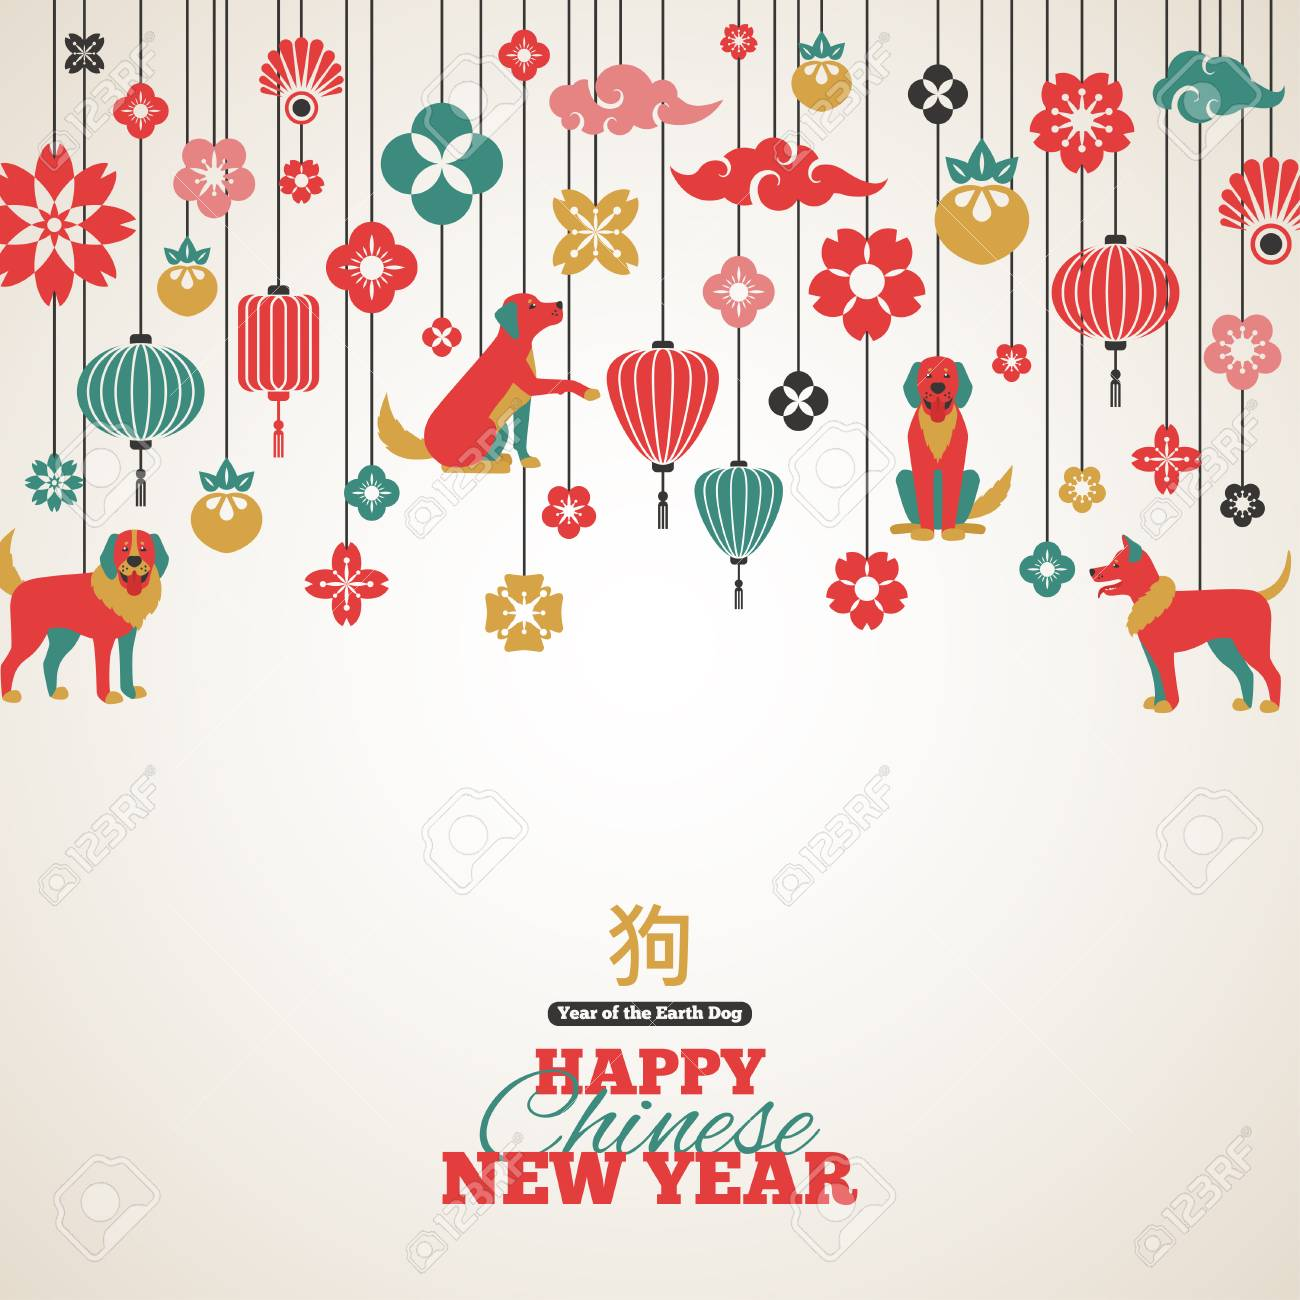 2018 Chinese New Year Greeting Card Royalty Free Cliparts, Vectors ...